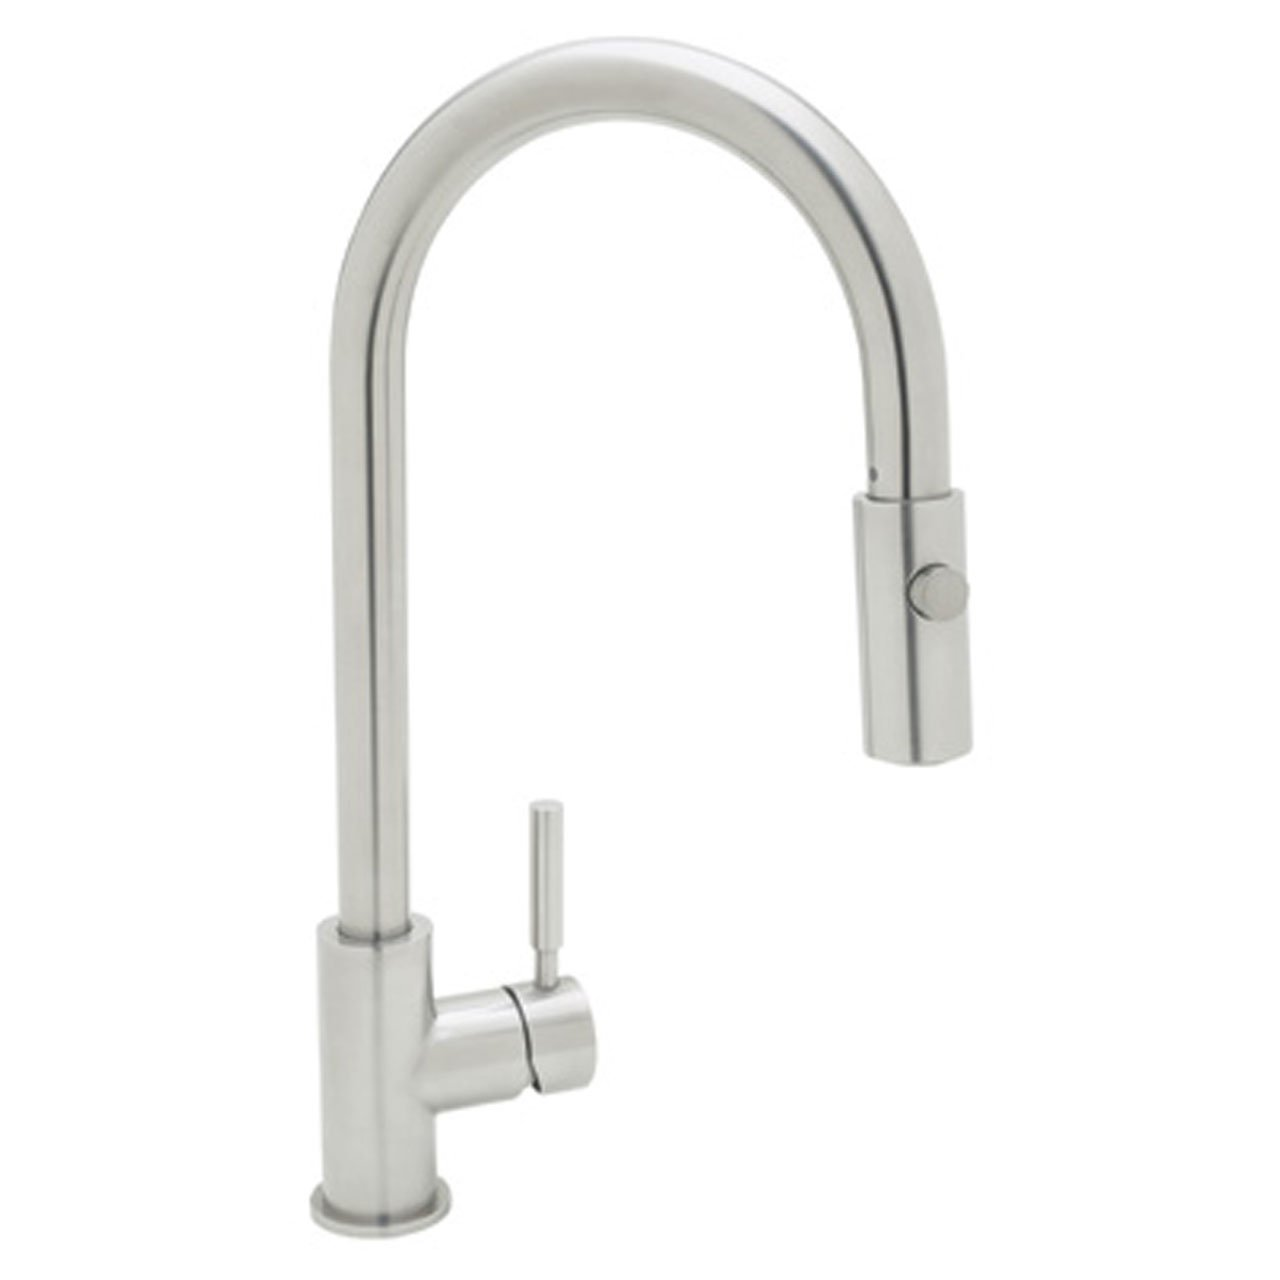 Rohl R7520SS Lux Single-Lever Handle Pull-Down Kitchen Faucet 0-in L x 2.2-in W x 16.6-in H Stainless Steel